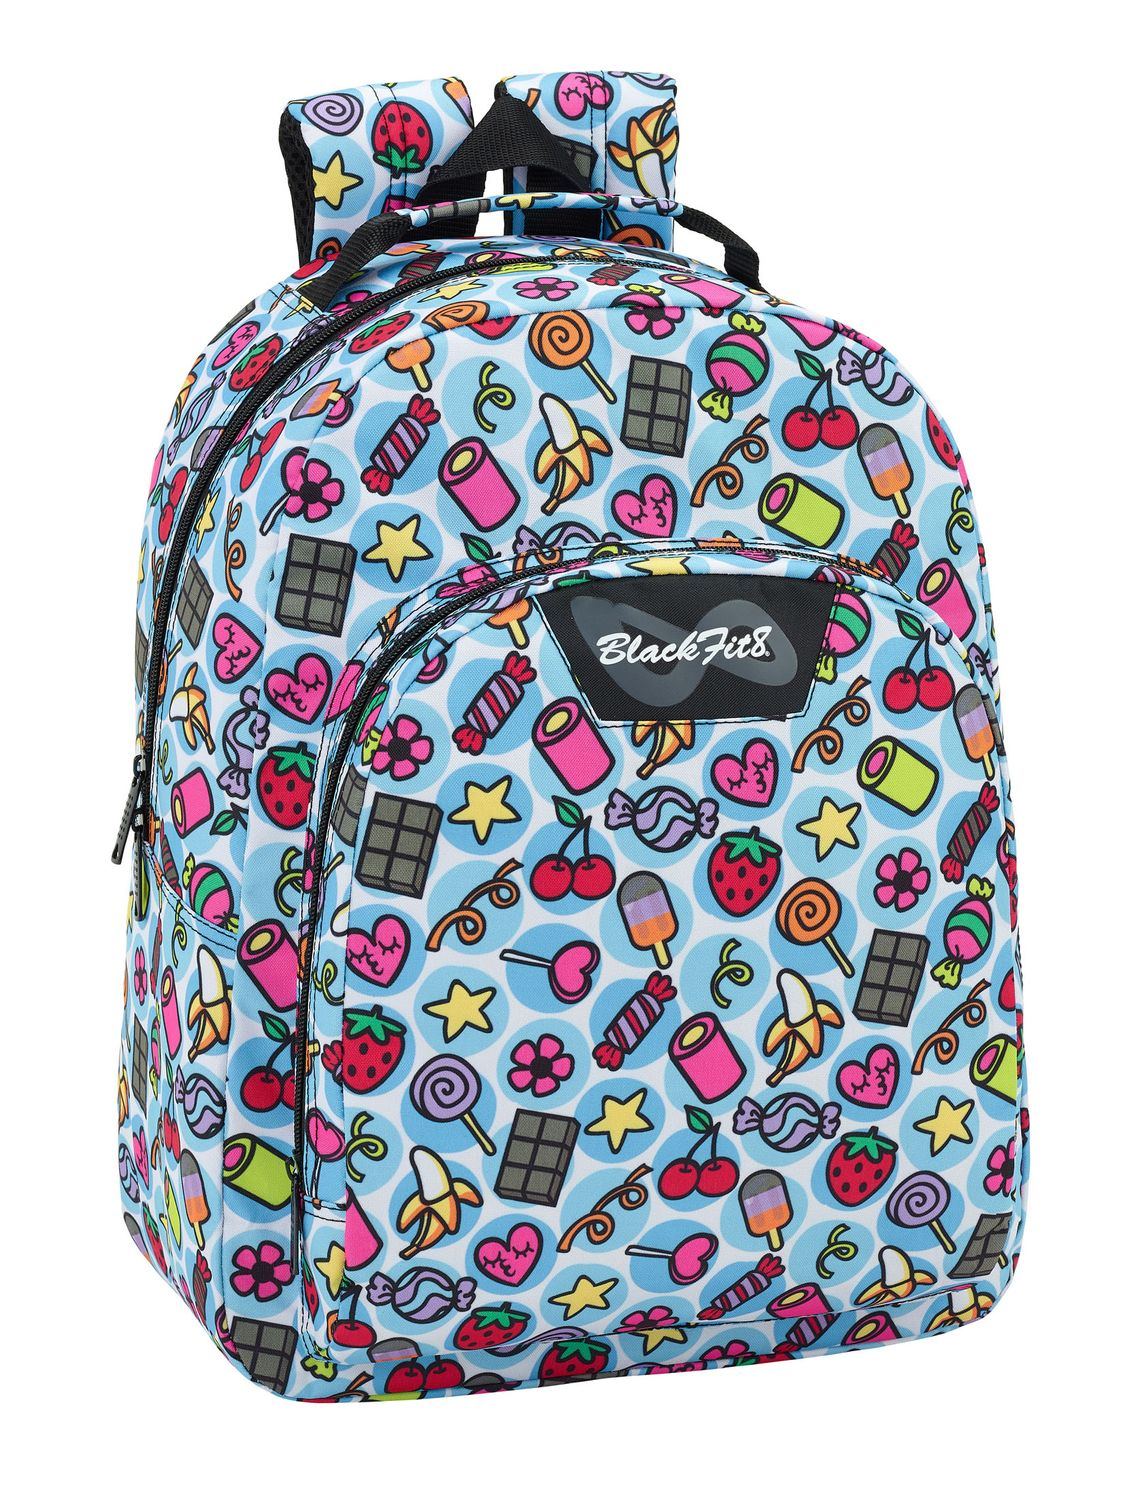 Blackfit Sweet Backpack 42cm – image 1